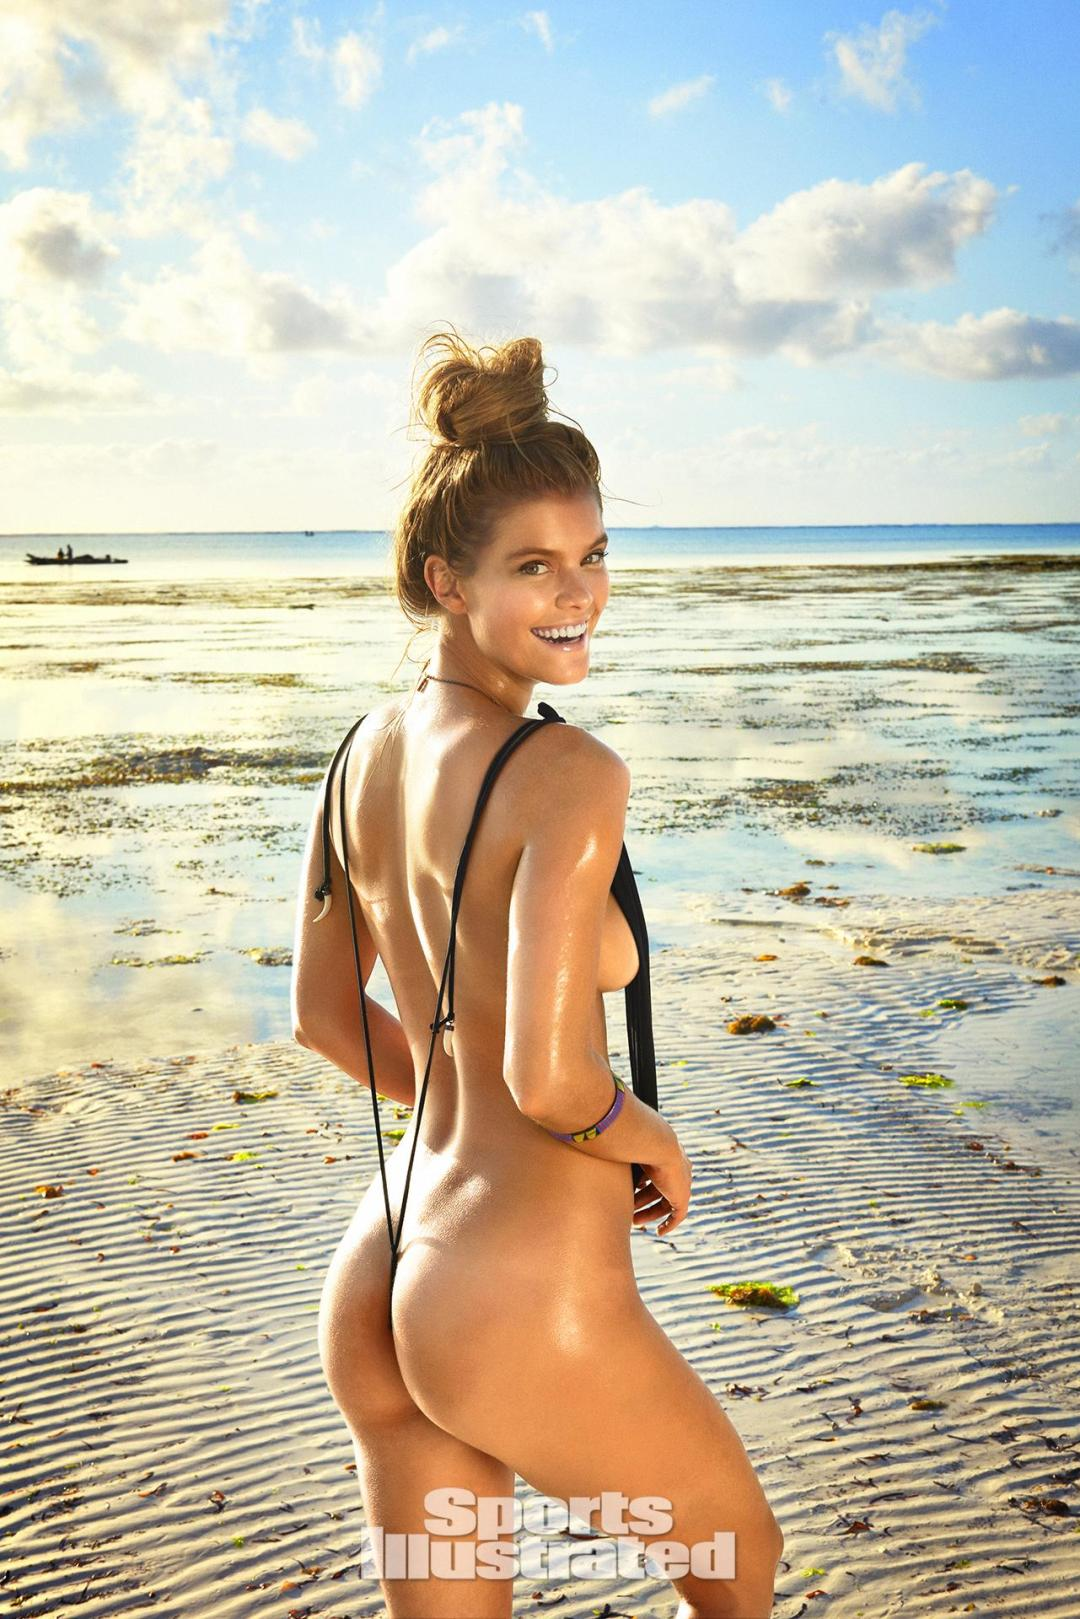 nina-agdal-2016-sexy-topless-photo-sports-illustrated 1